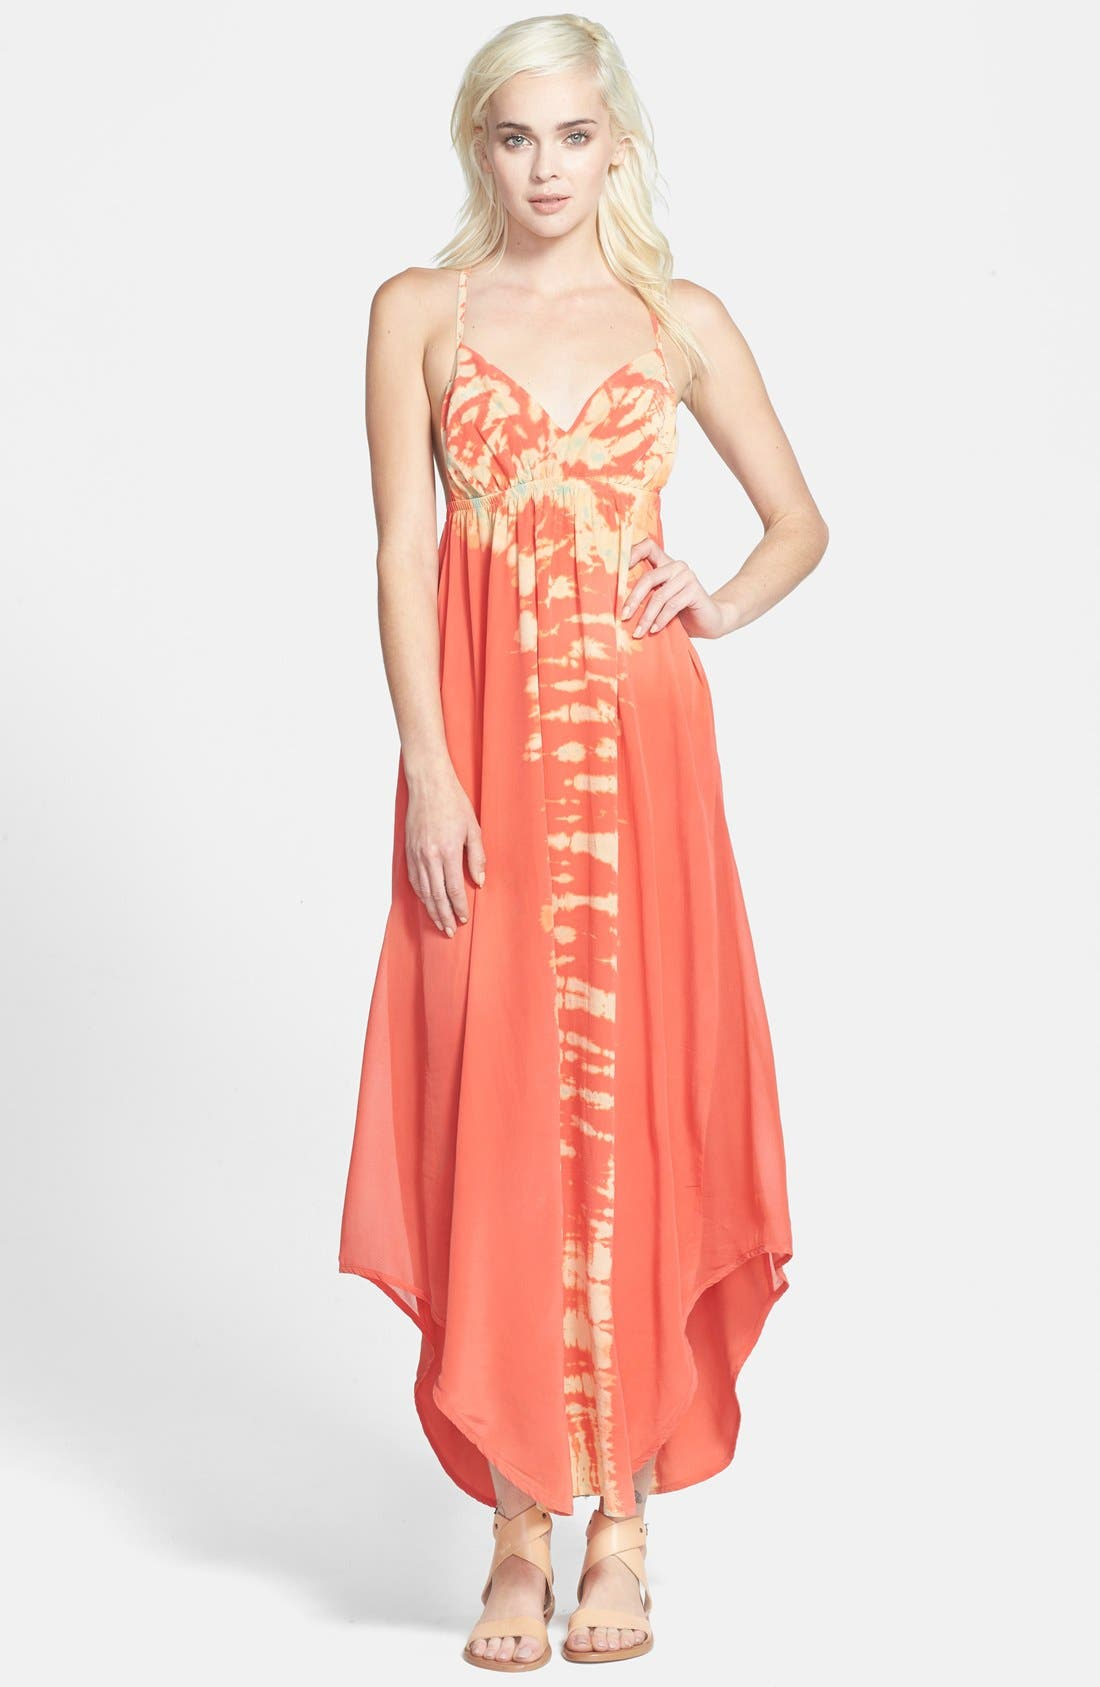 Alternate Image 1 Selected - Gypsy 05 Strappy Tie-Dye Maxi Dress